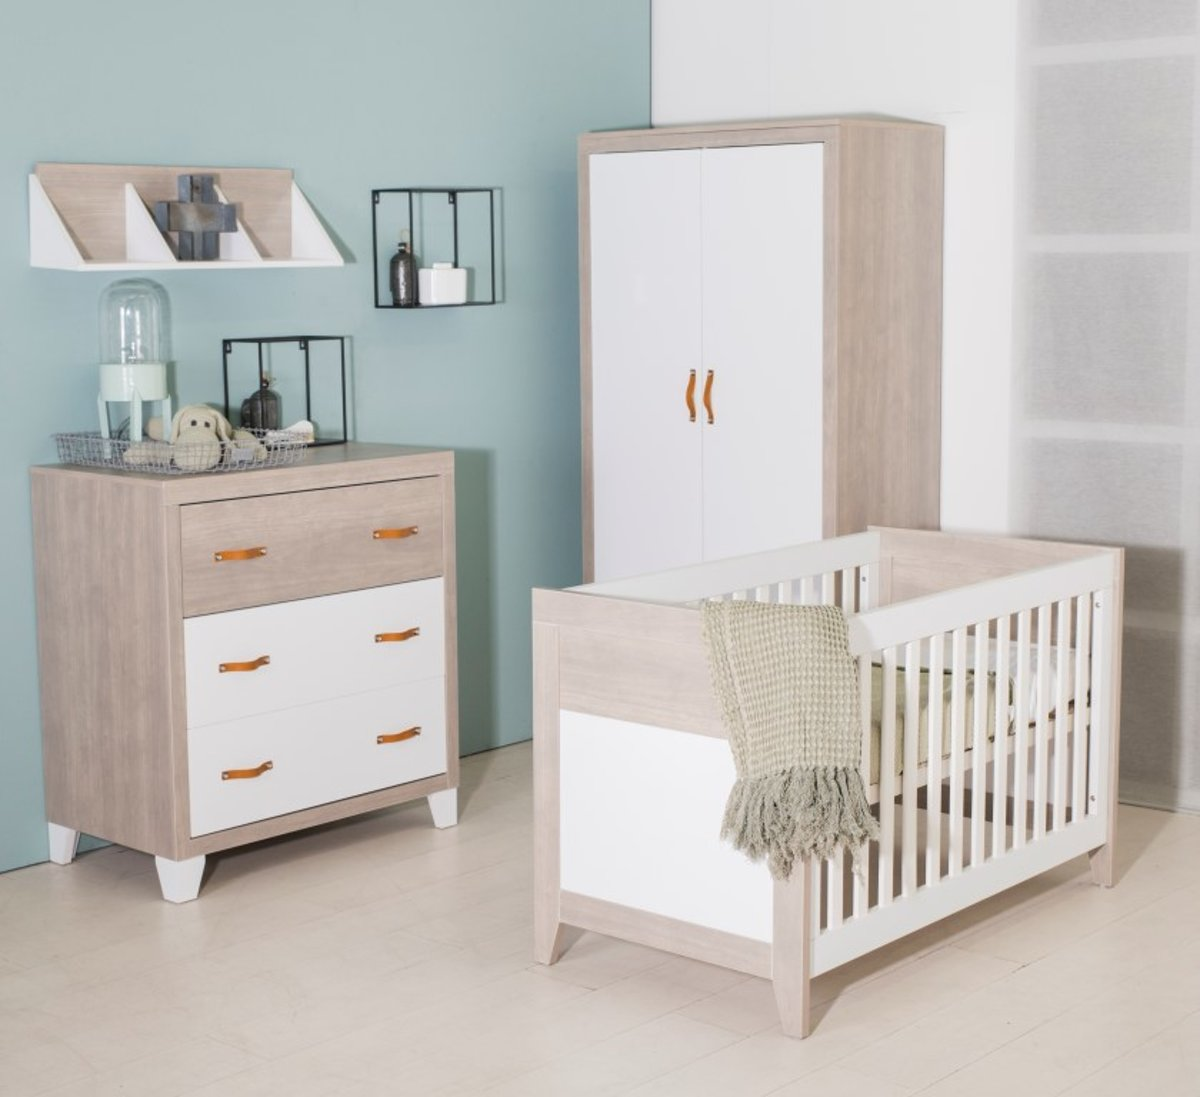 Bebies First - Babykamer Boston - 3-delige - Ledikant - Commode - Kledingkast – Wit - Grijs